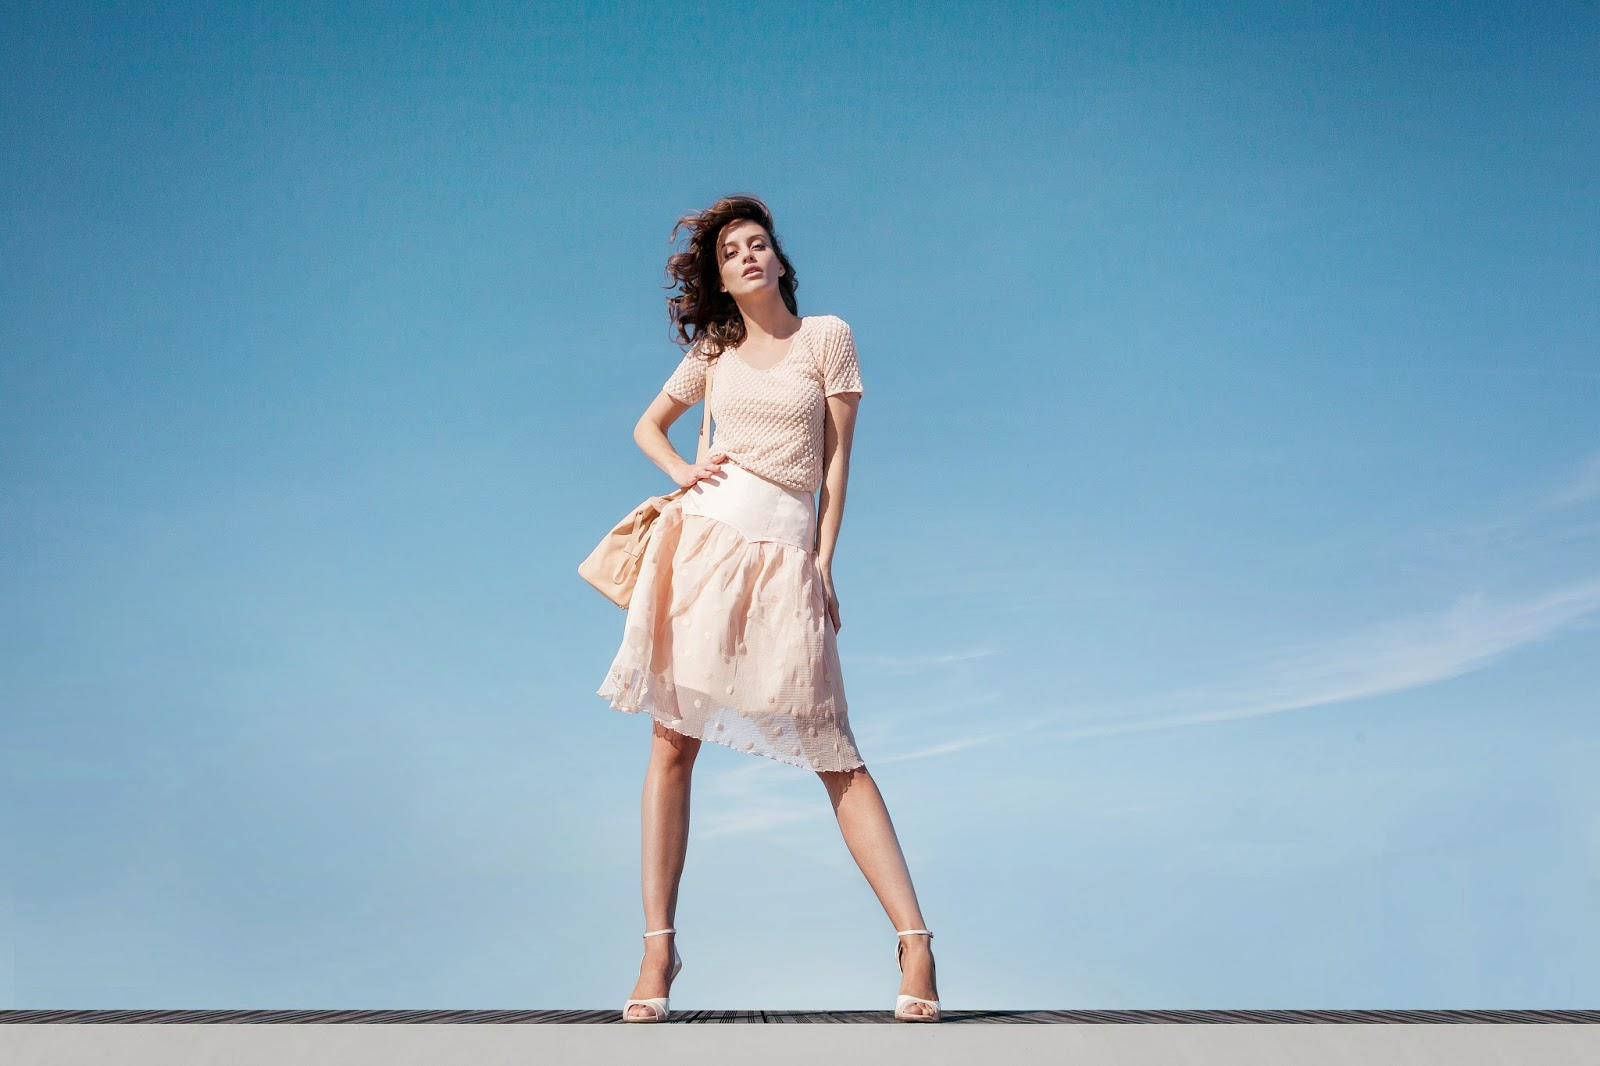 Repetto Launches New Summer Breeze Collection and Ad Camapaign